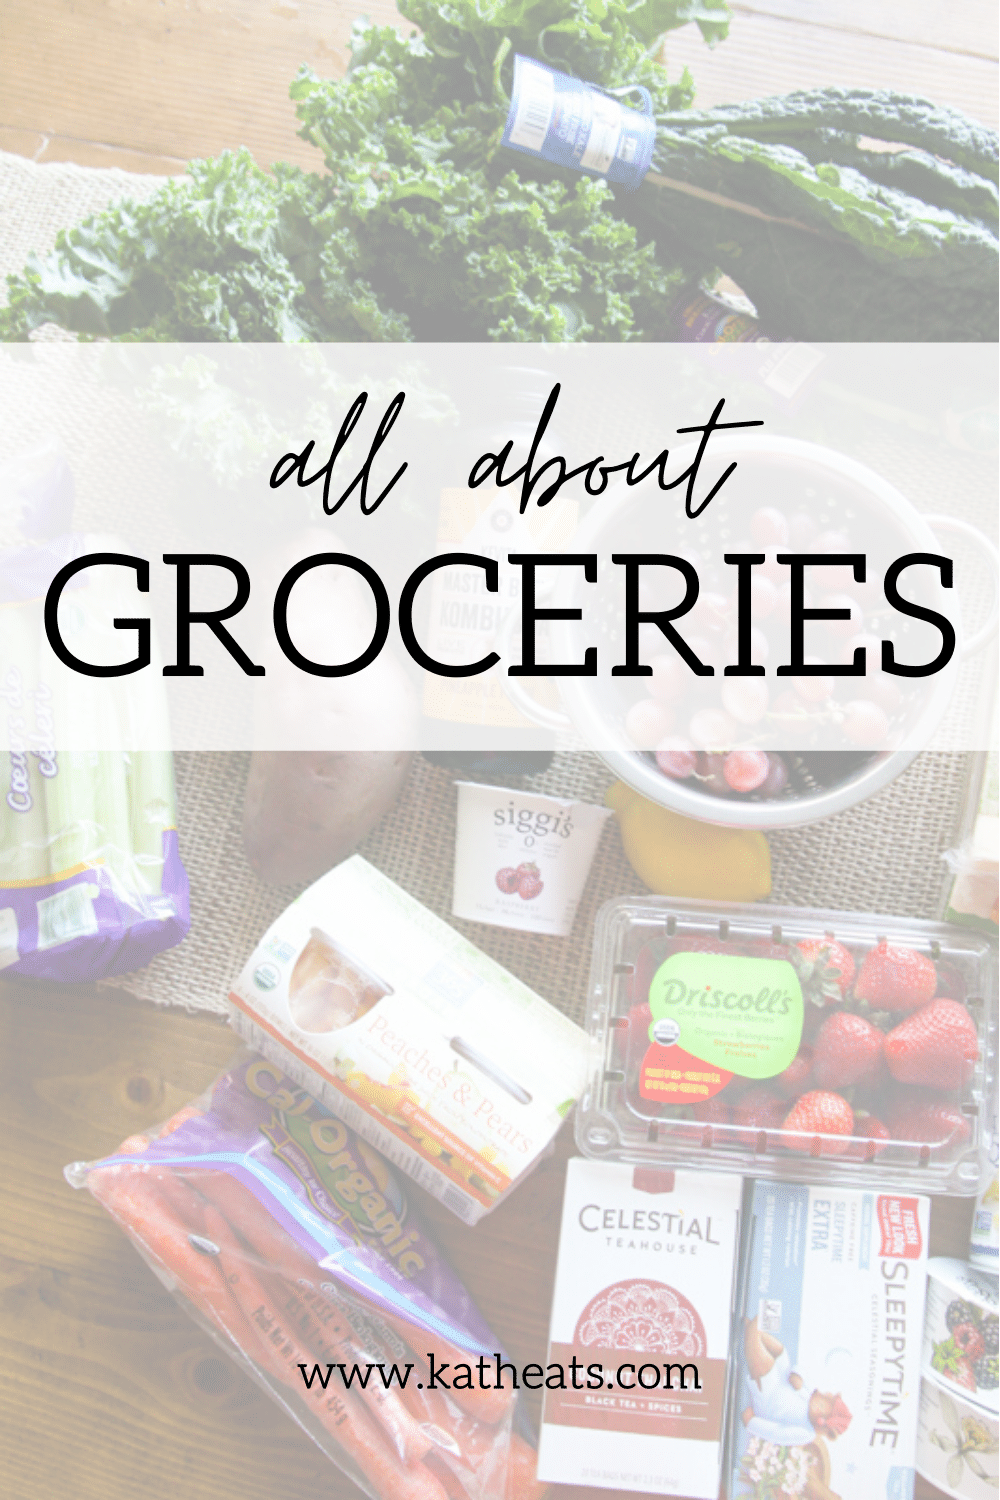 All About Groceries: overhead shot of groceries with text overlay.